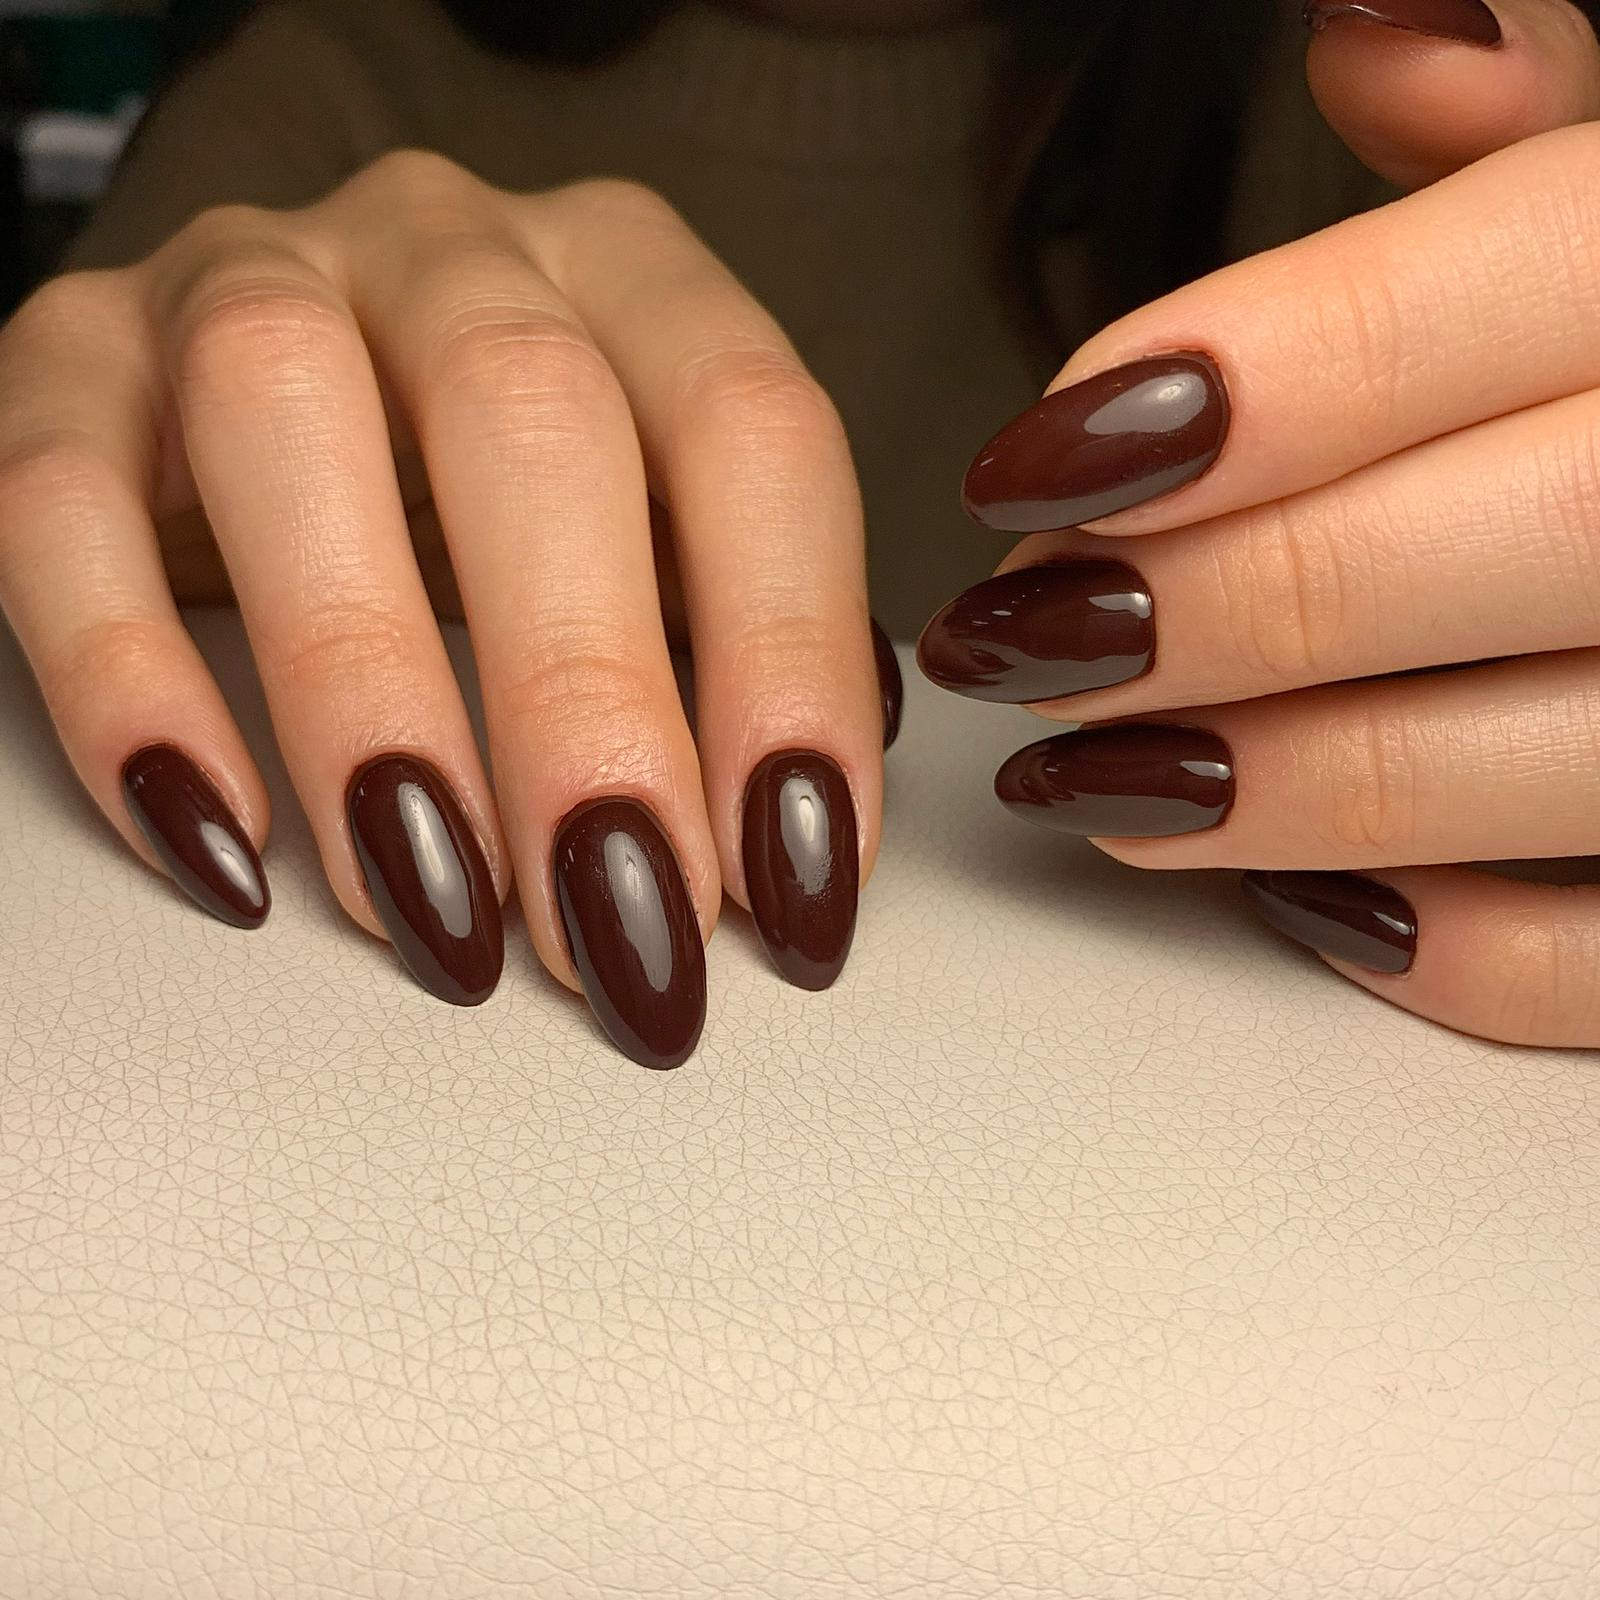 Manicure & Semi-permanent - Brown nails by Le diX Paris